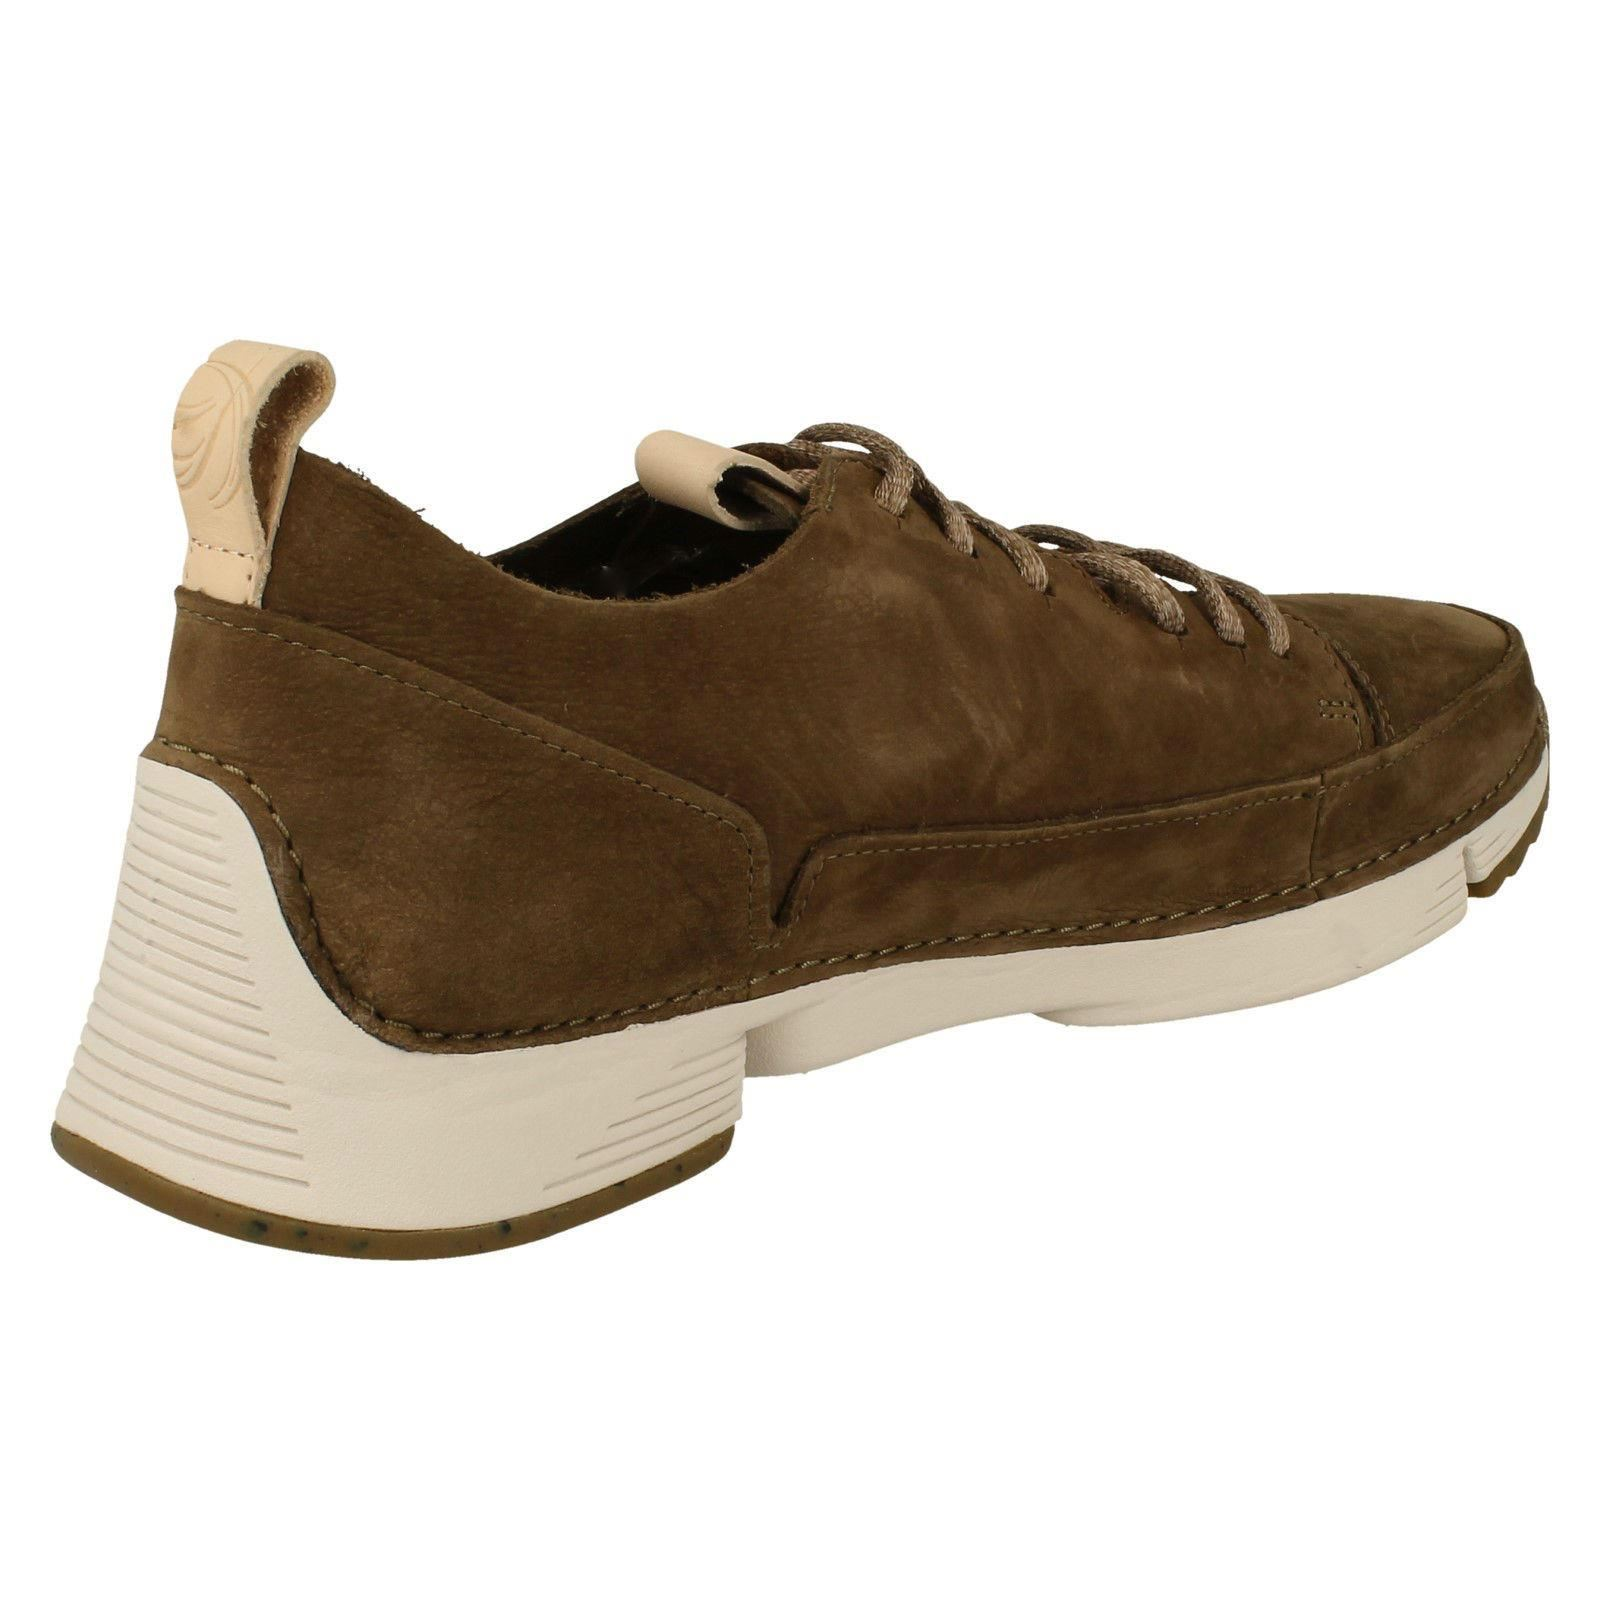 Hommes Kaki 'tri Spark' Clarks Casual Chaussures vert lacets à wPB1aq